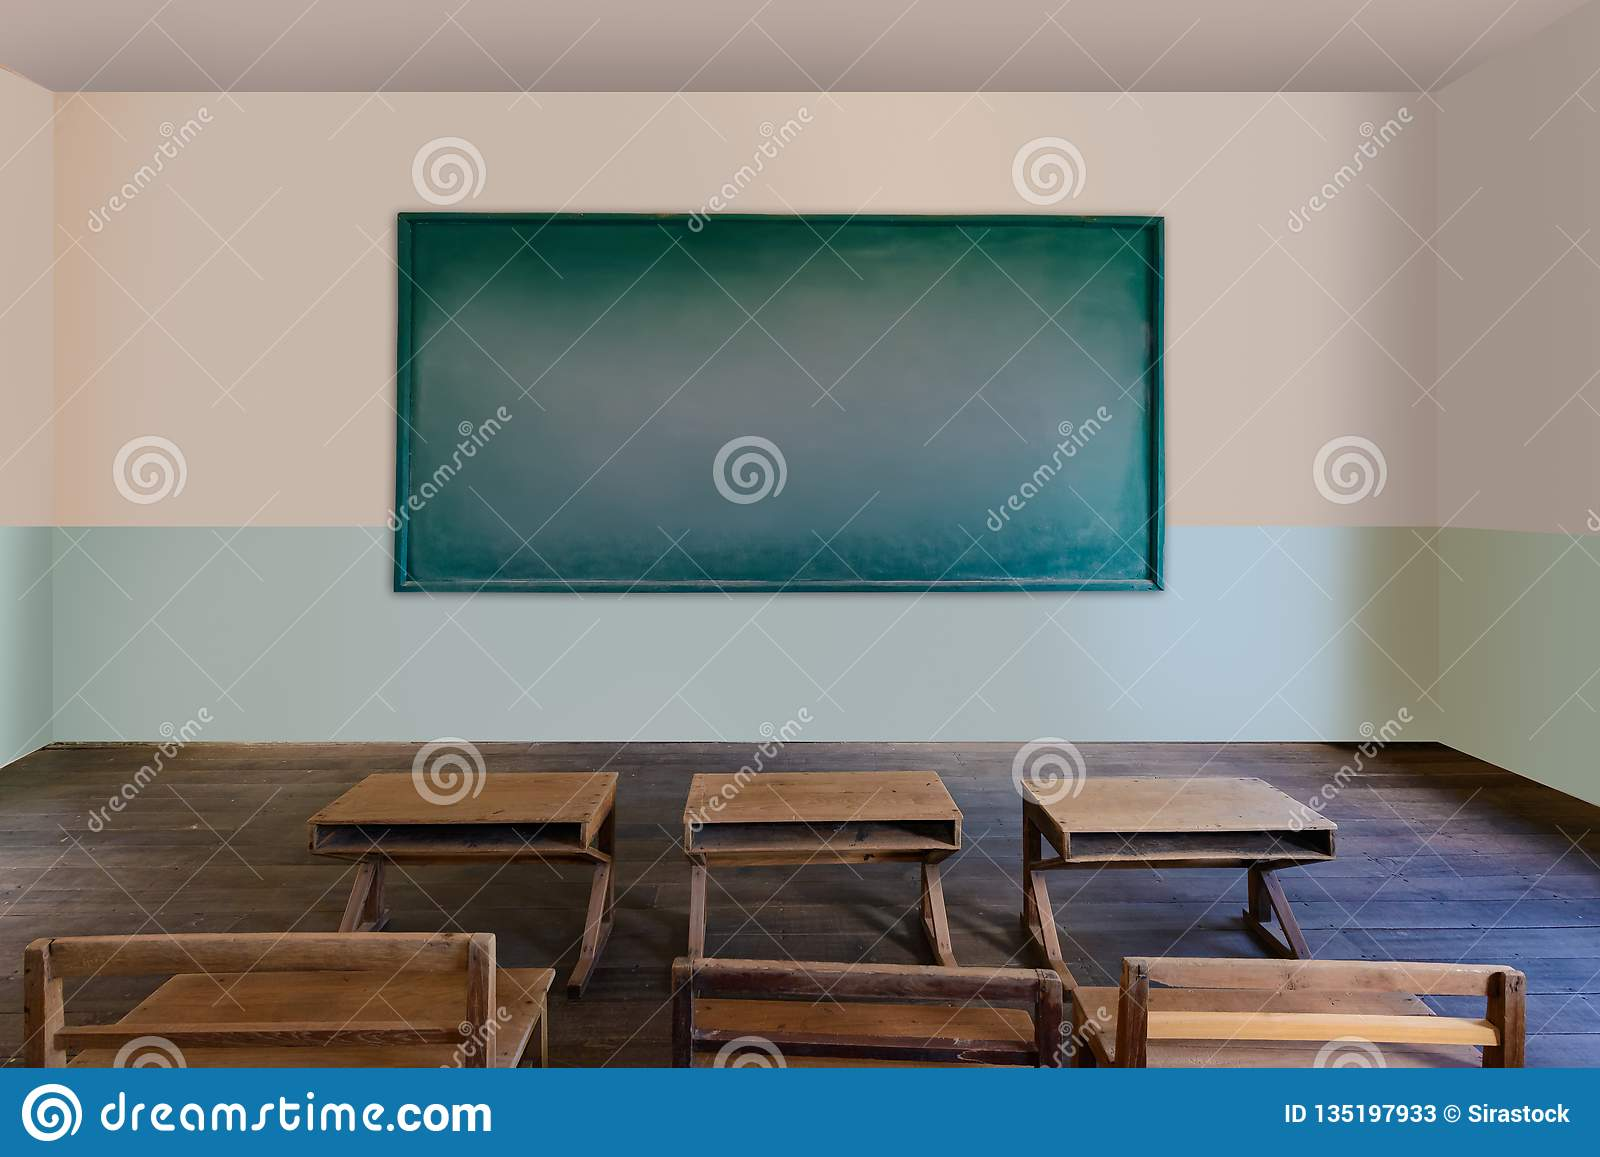 Antique classroom in school with Rows of empty wooden desks Wooden chair and benchesstudy desk and chair blackboard & Antique Classroom In School With Rows Of Empty Wooden Desks Stock ...